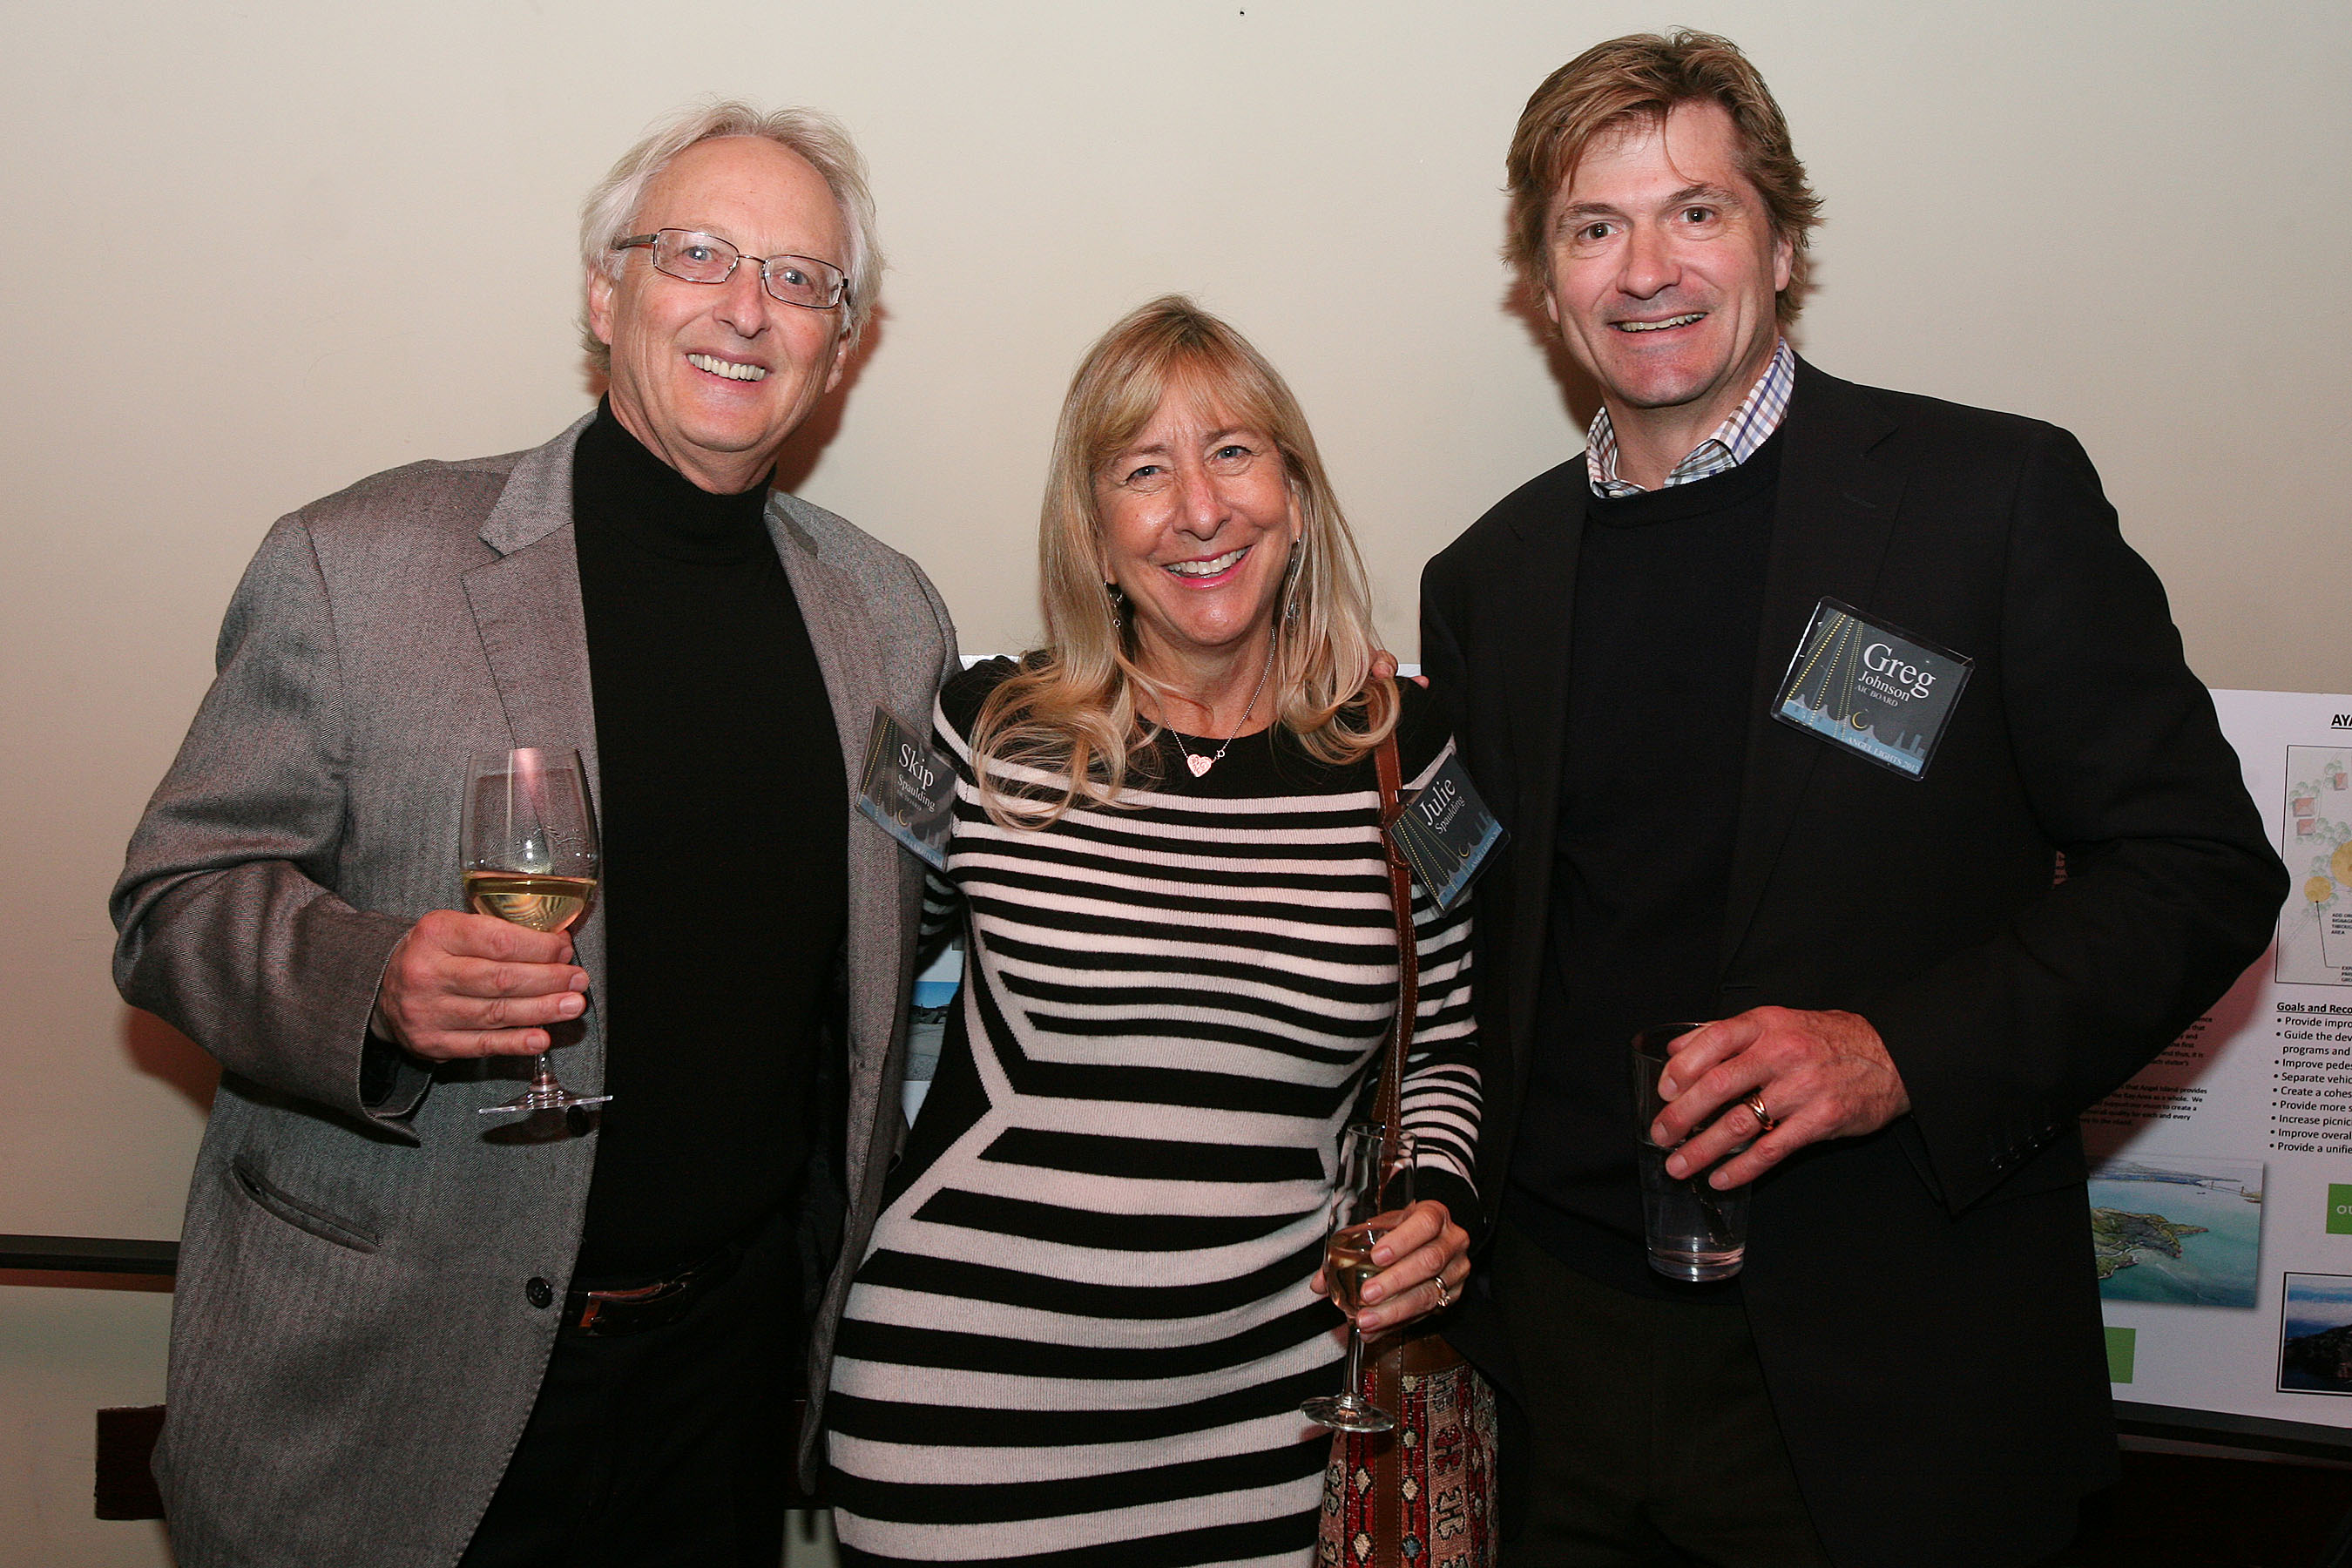 AIC Board Vice-President, Skip Spaulding, wife Julie and Greg Johnson - AIC 2014 Board President